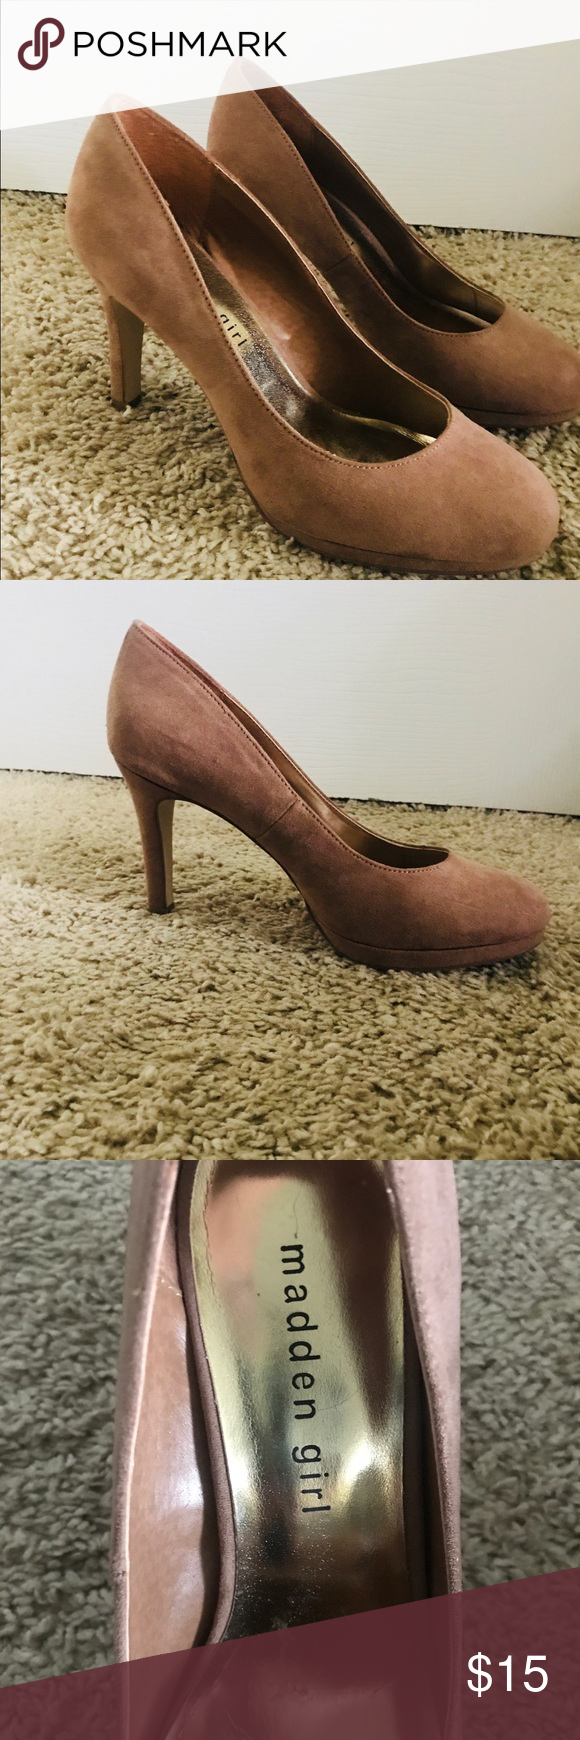 f43a1898cf0 Madden Girl Women s Dark Nude Dress Pumps size 6.5 Madden Girl - Women s  Dolce Dress Pump